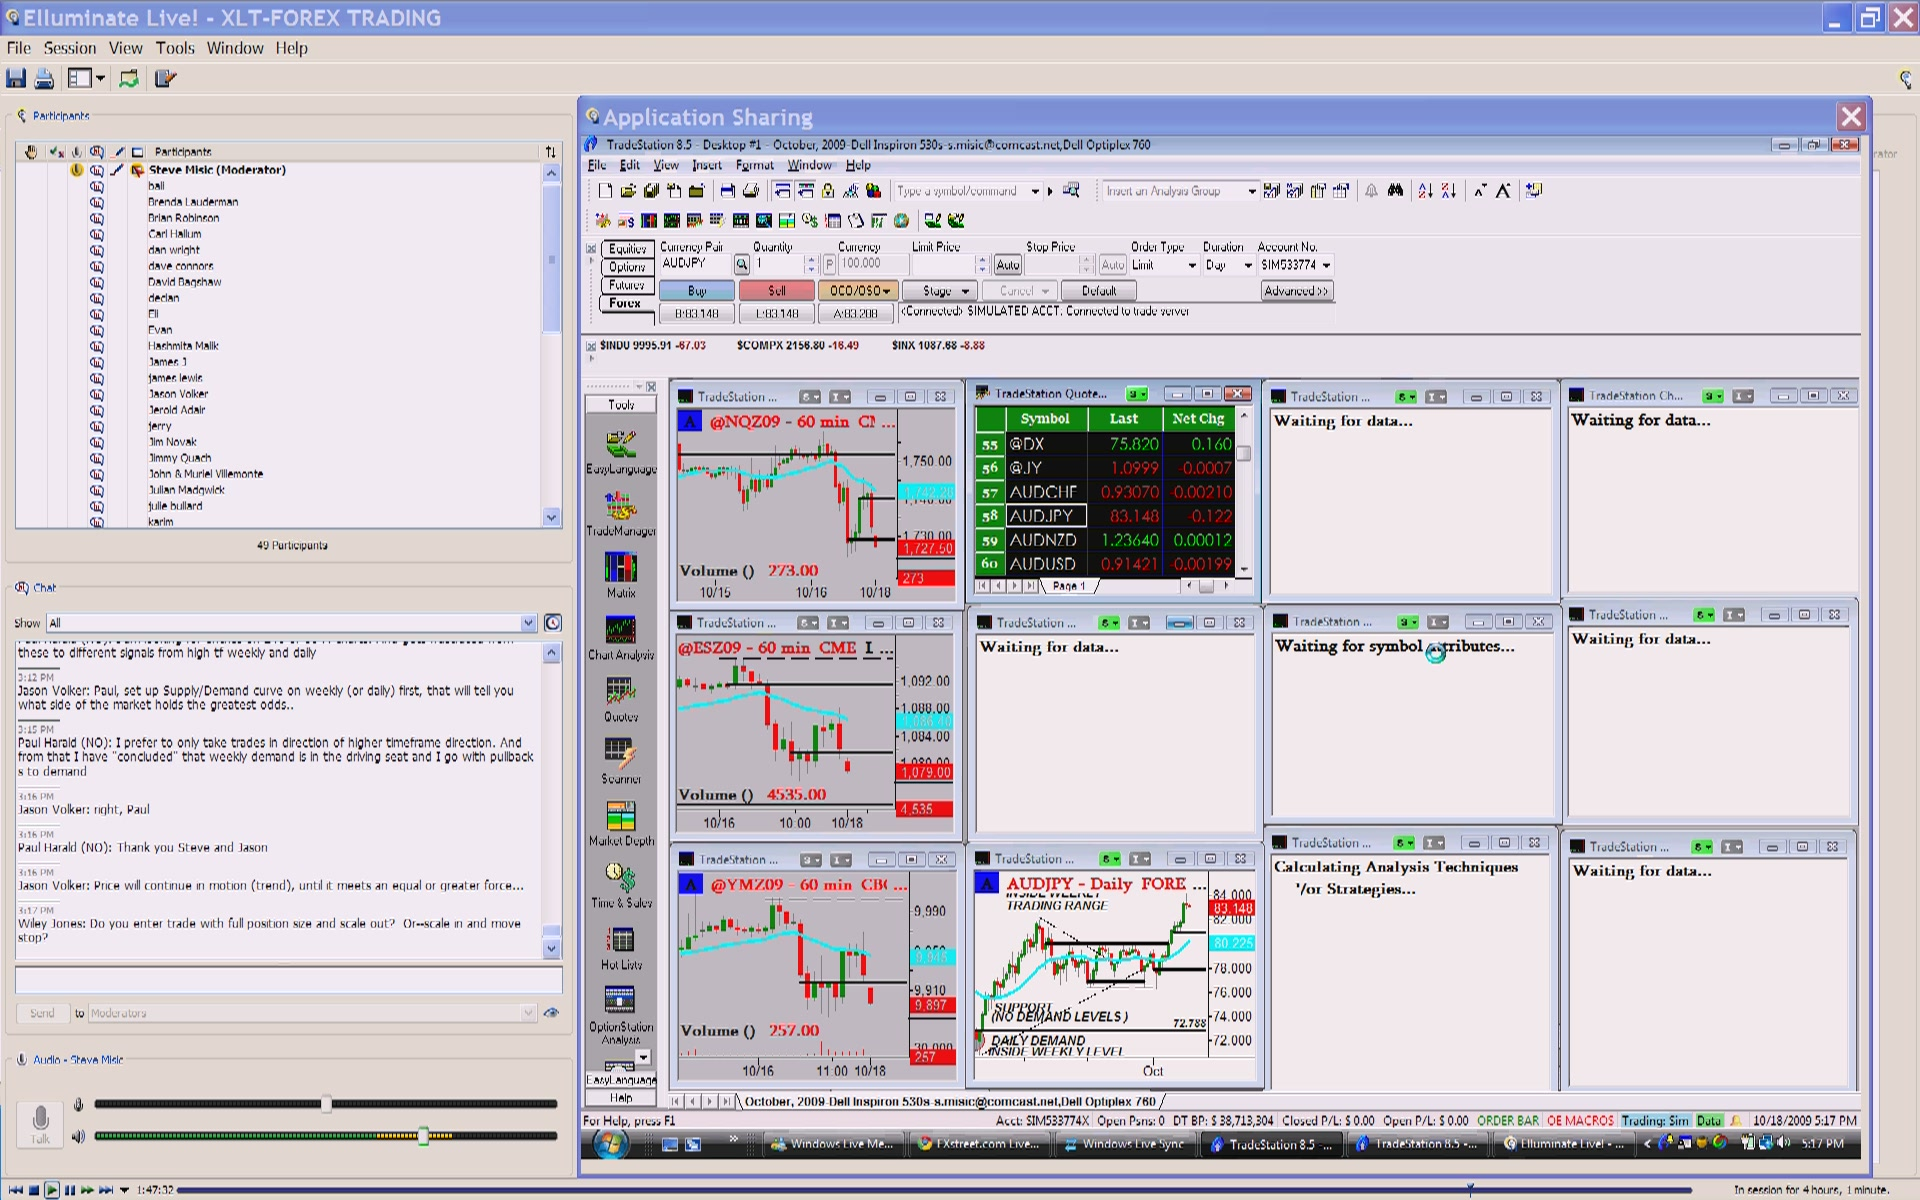 Xlt forex trading course download